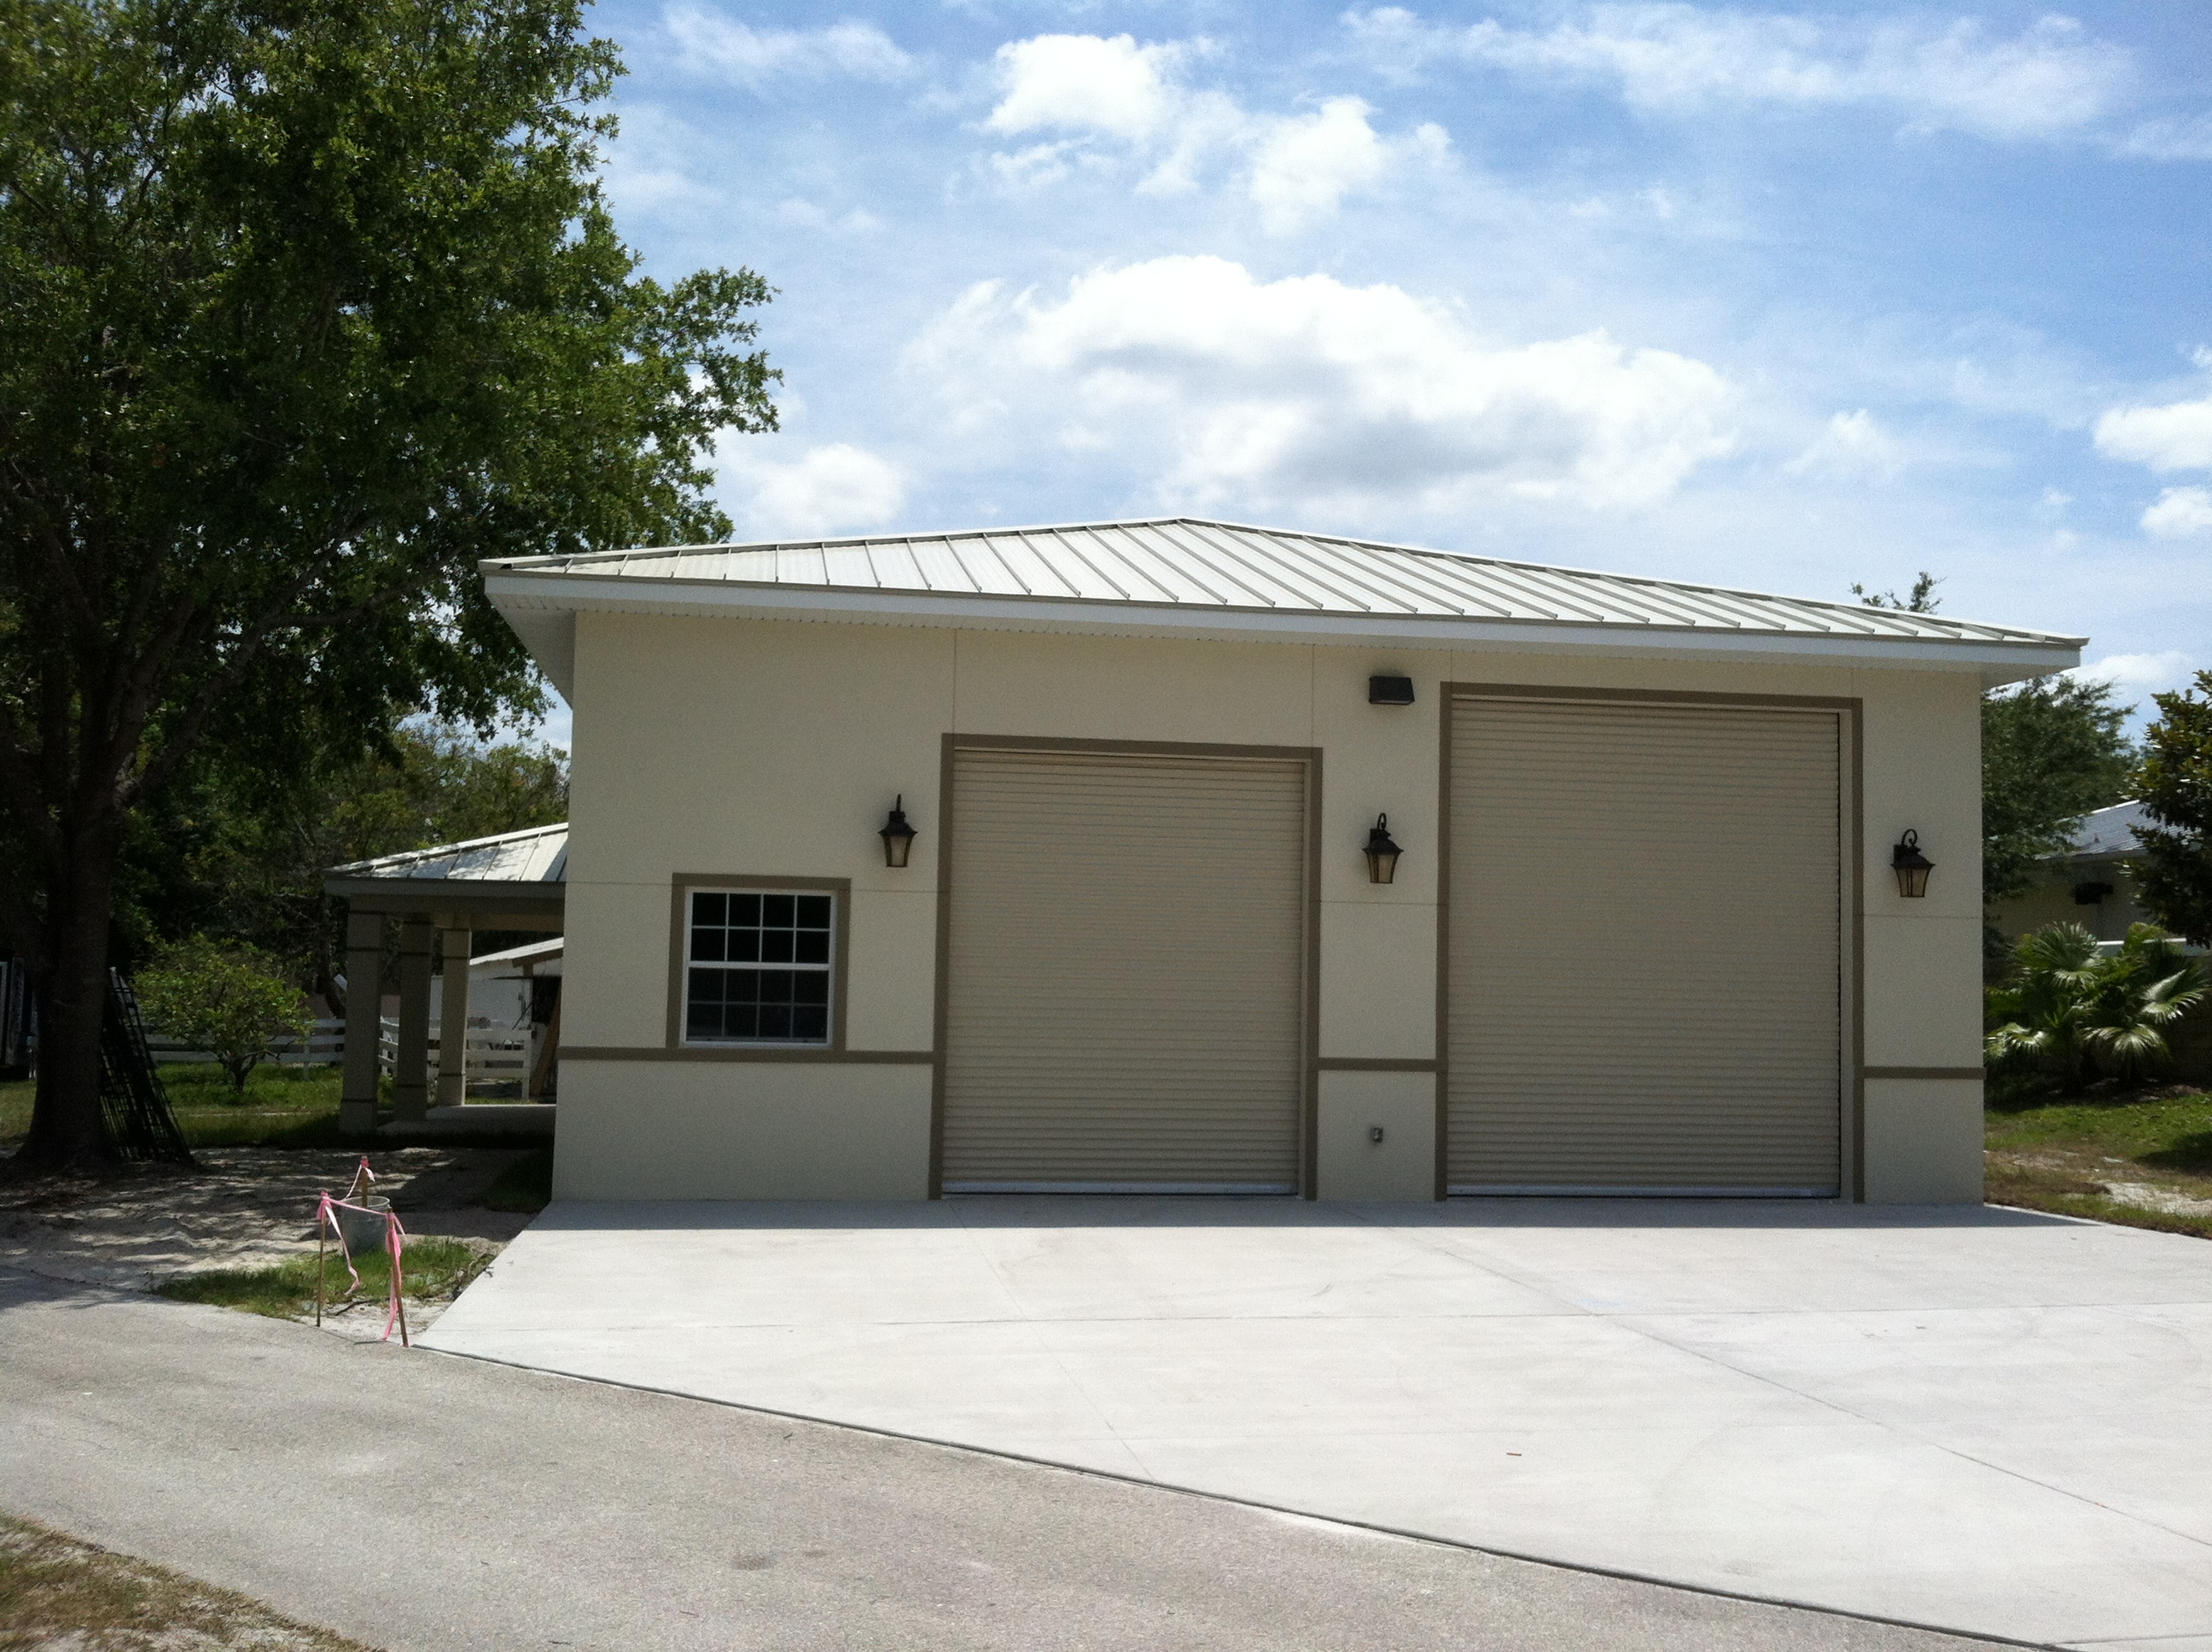 Top 22 Photos Ideas For Garage Homes Home Building Plans